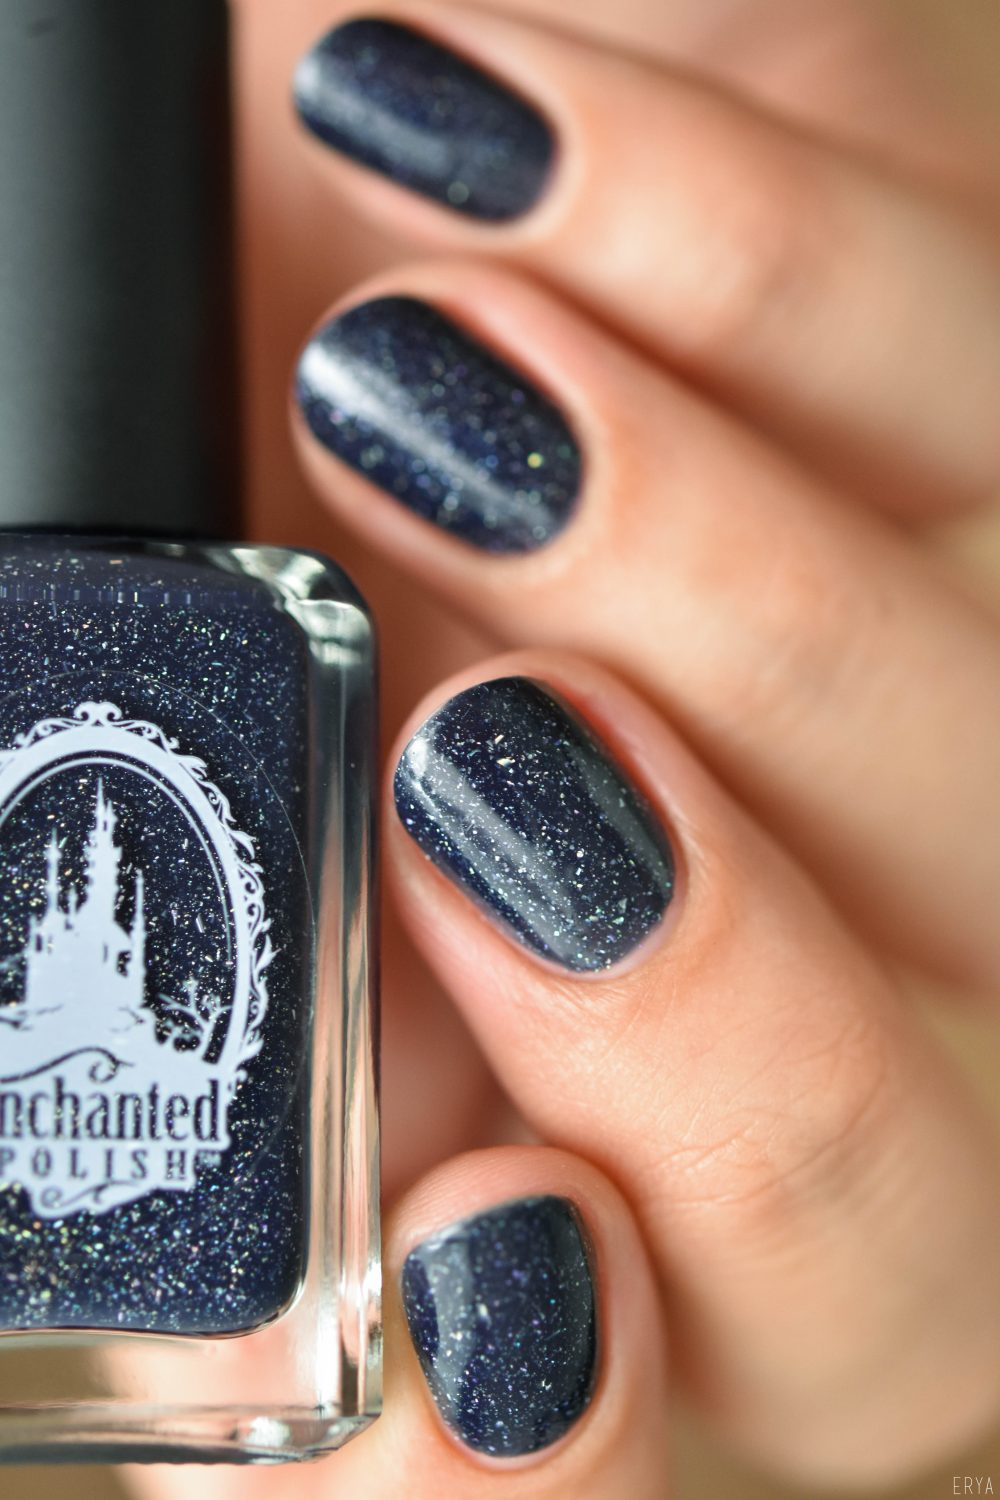 Enchanted_Polish-Rainstorm-4